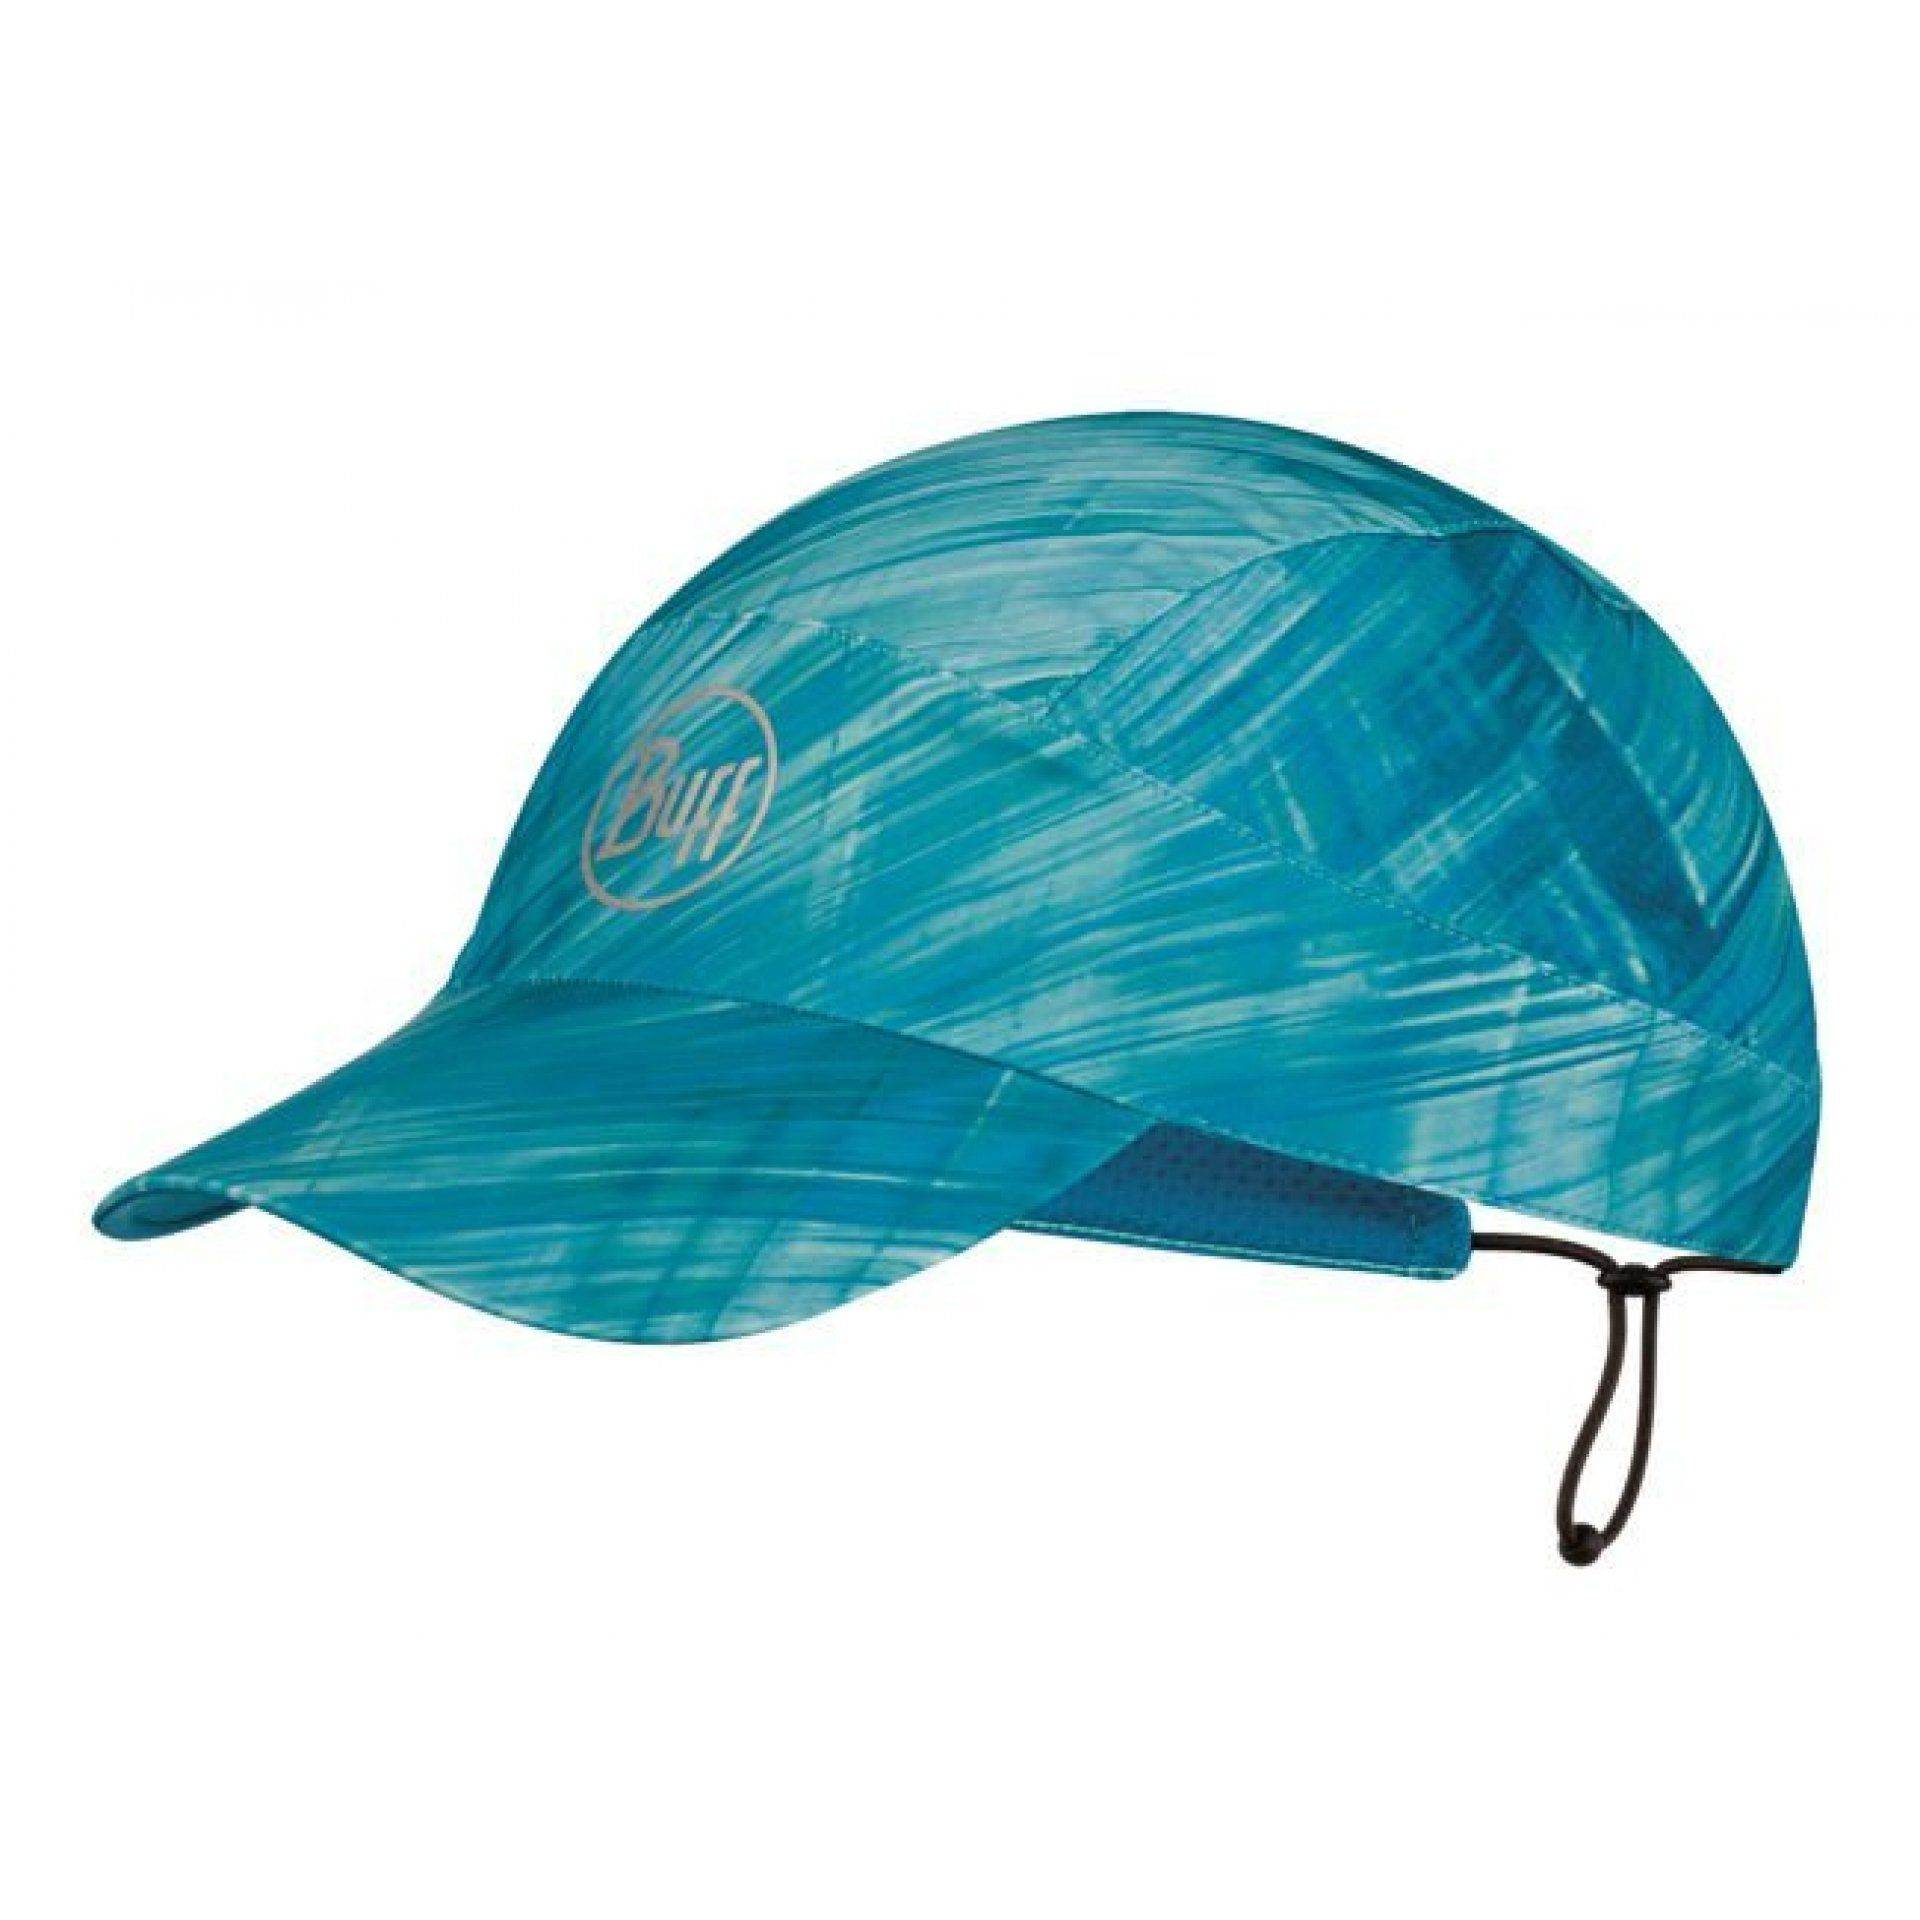 CZAPKA Z DASZKIEM BUFF PACK RUN CAP R-MAGIC TURQUOISE